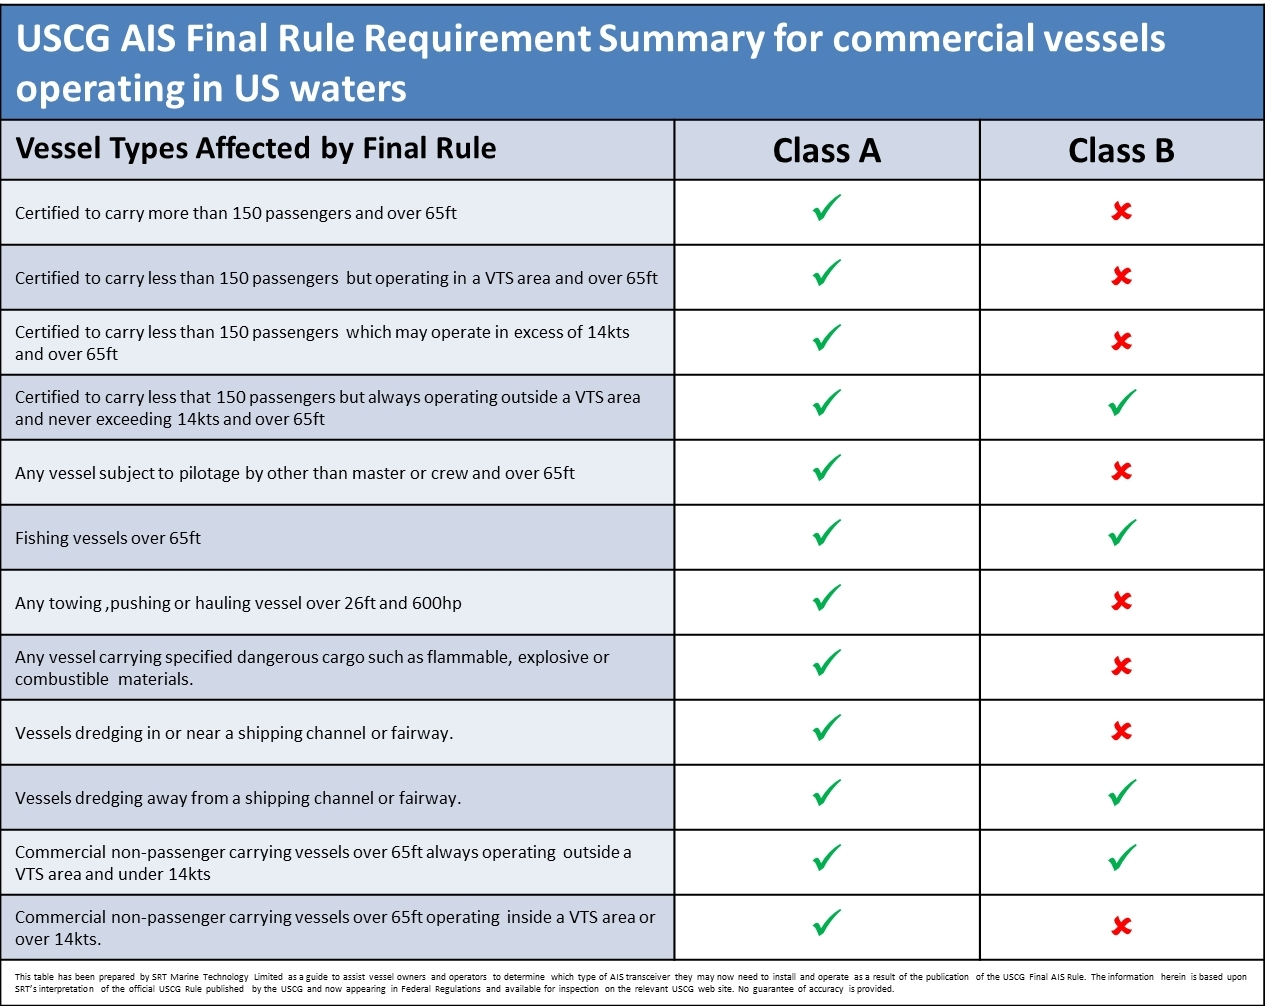 USCG AIS Final Rule Requirement Summary for commercial vessels operating in US waters. (Photo: Business Wire)